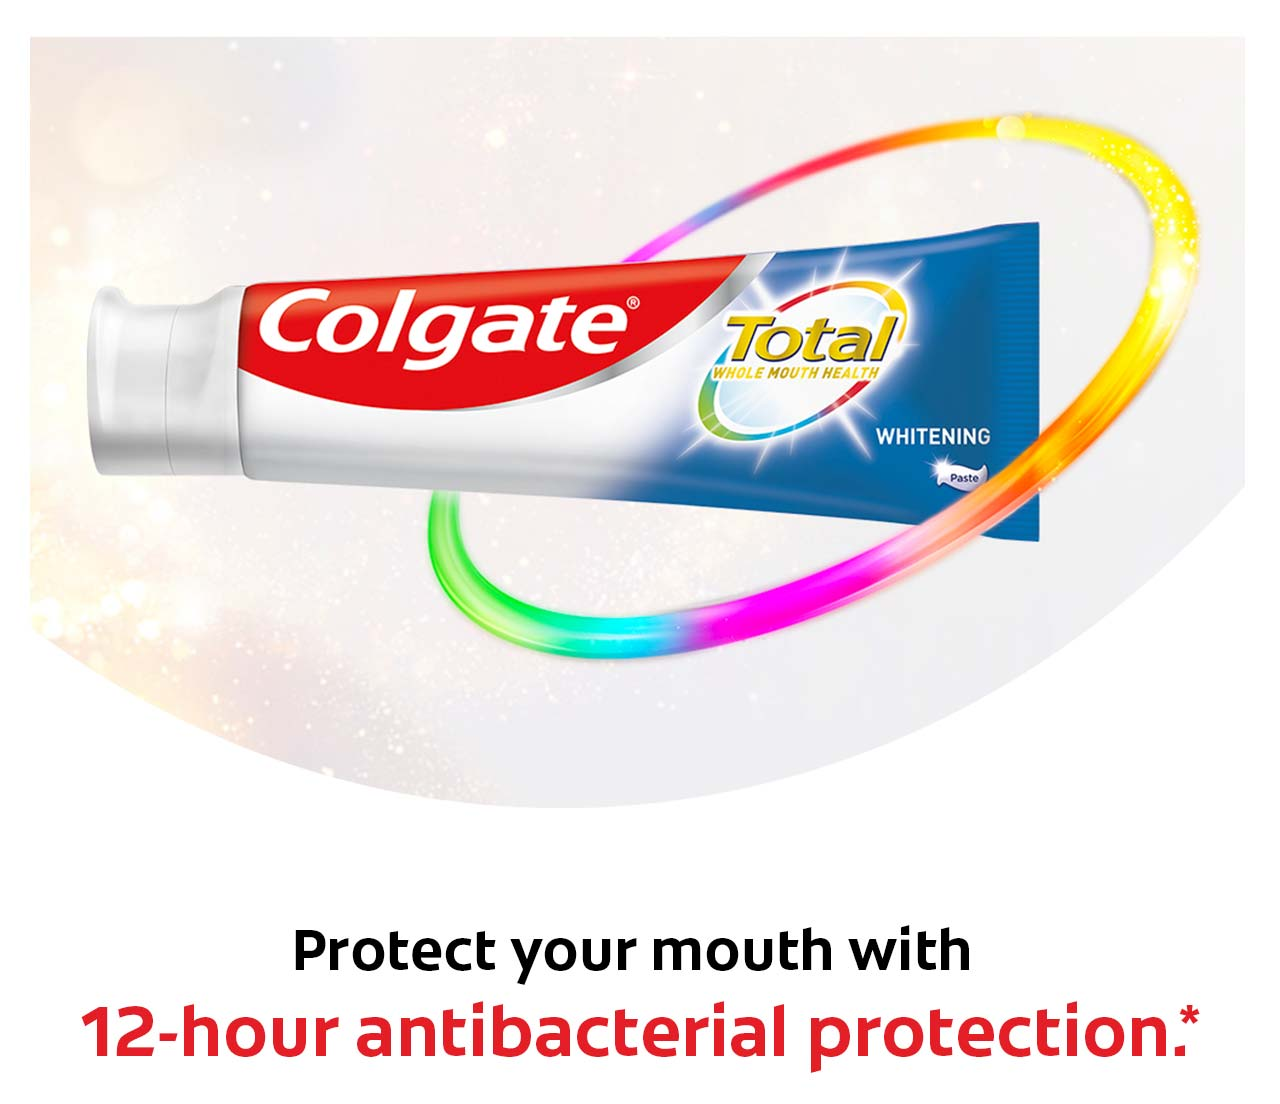 Colgate® Total. Protect your mouth with 12-hour antibacterial protection.*